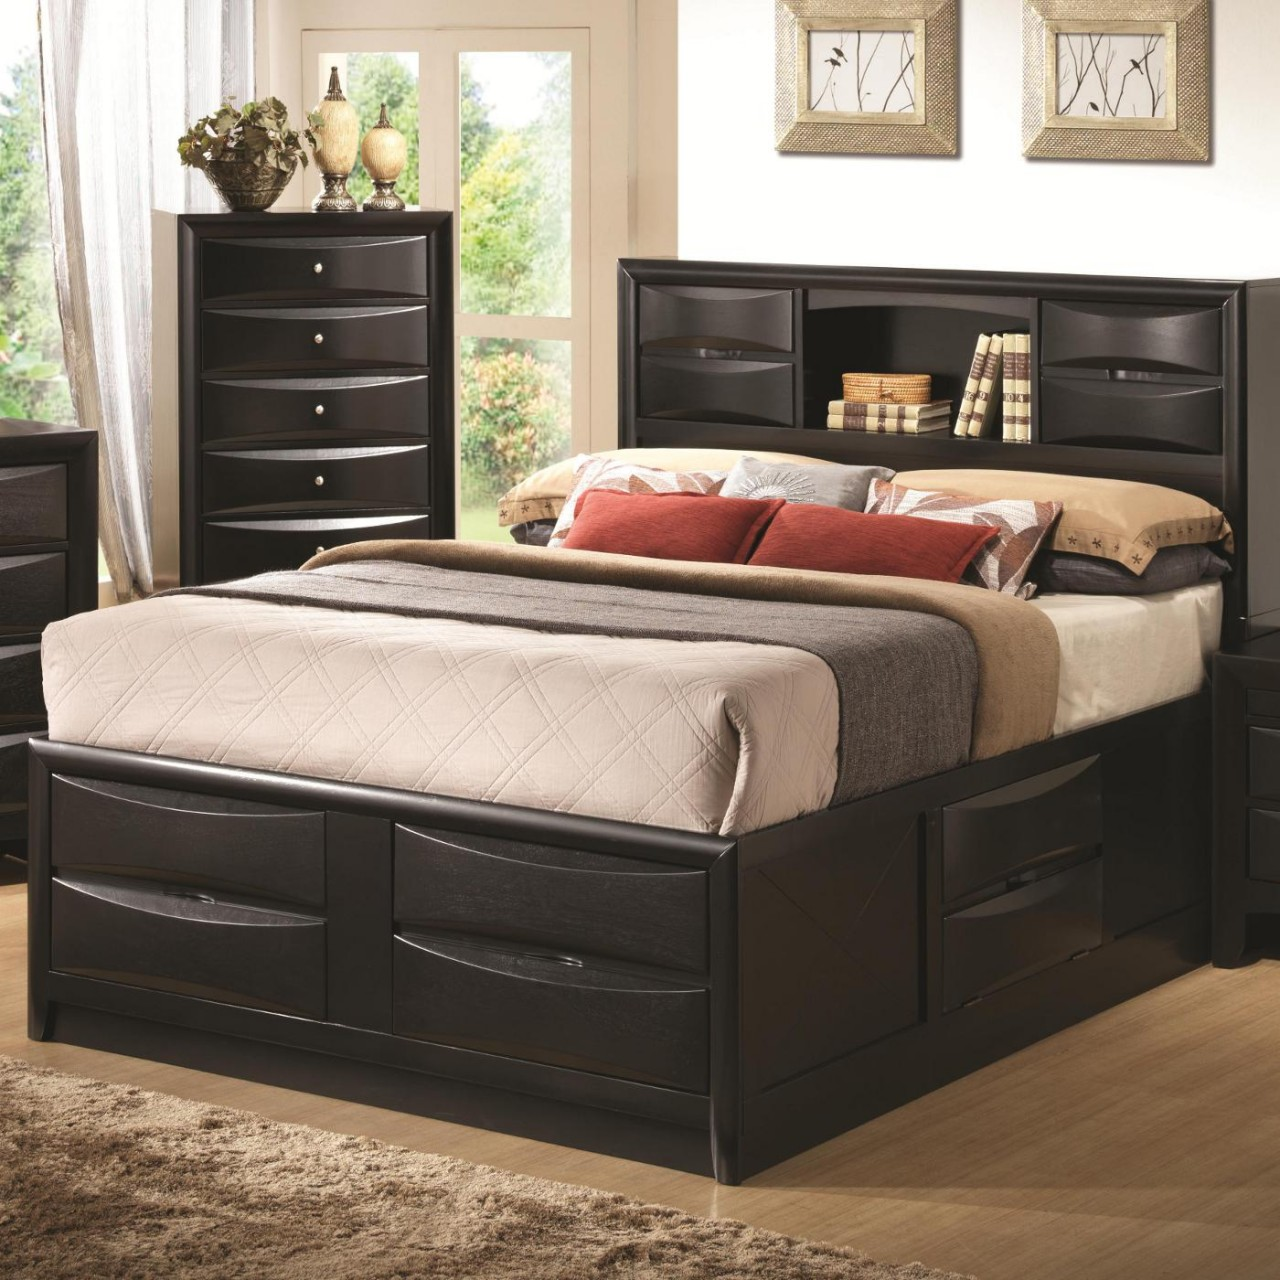 Black painted wooden bed frame with storage underneath and shelf plus a  pair of cabinets in